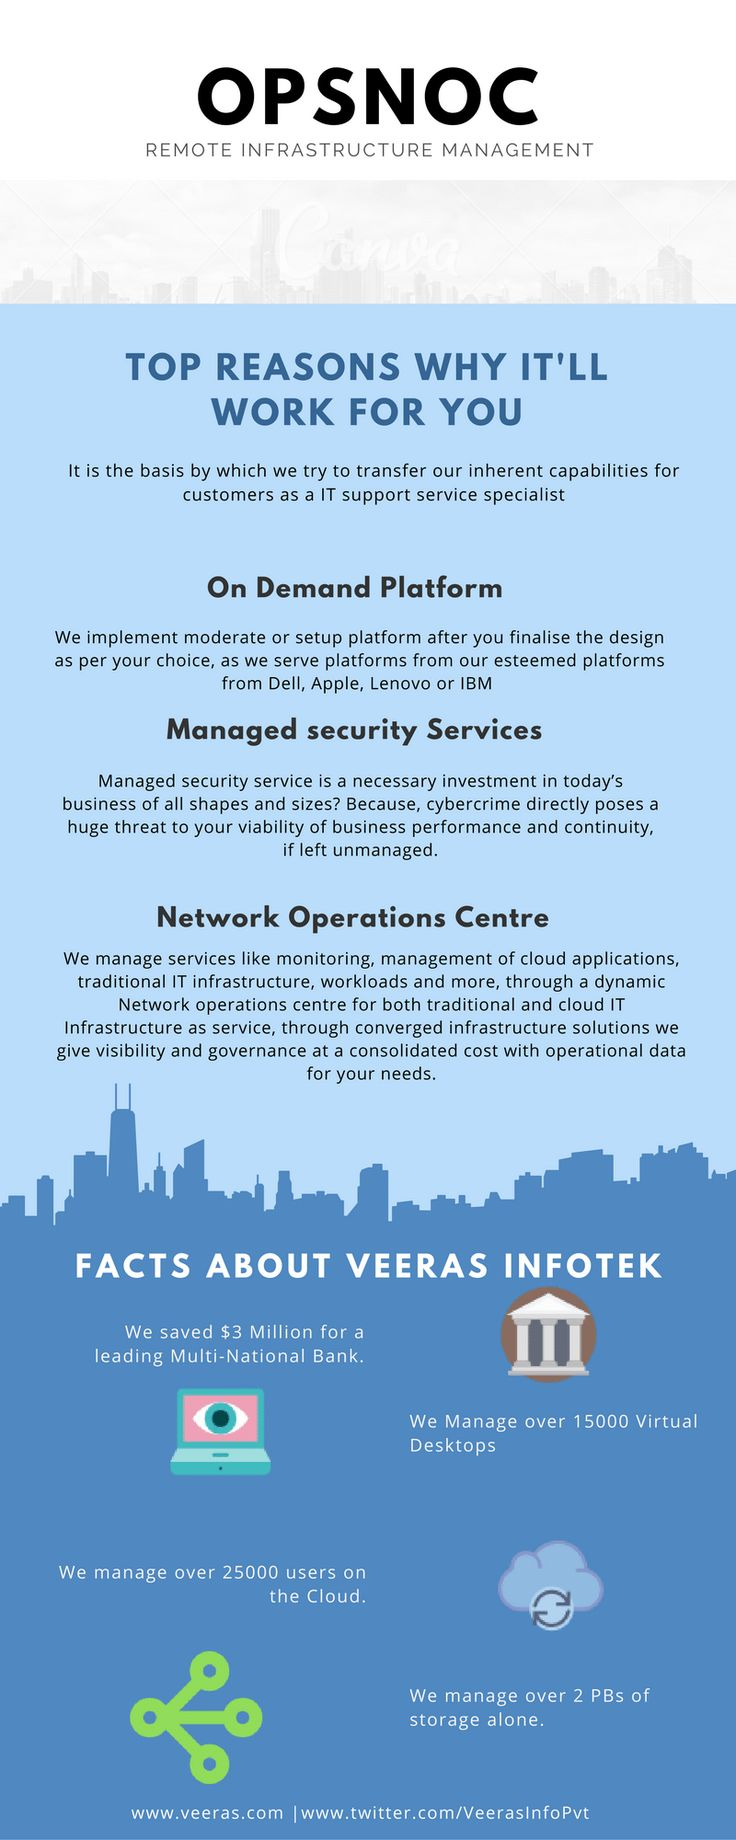 How to take care of your core business while veeras OPSNOC delivers your Infrastructure solutions